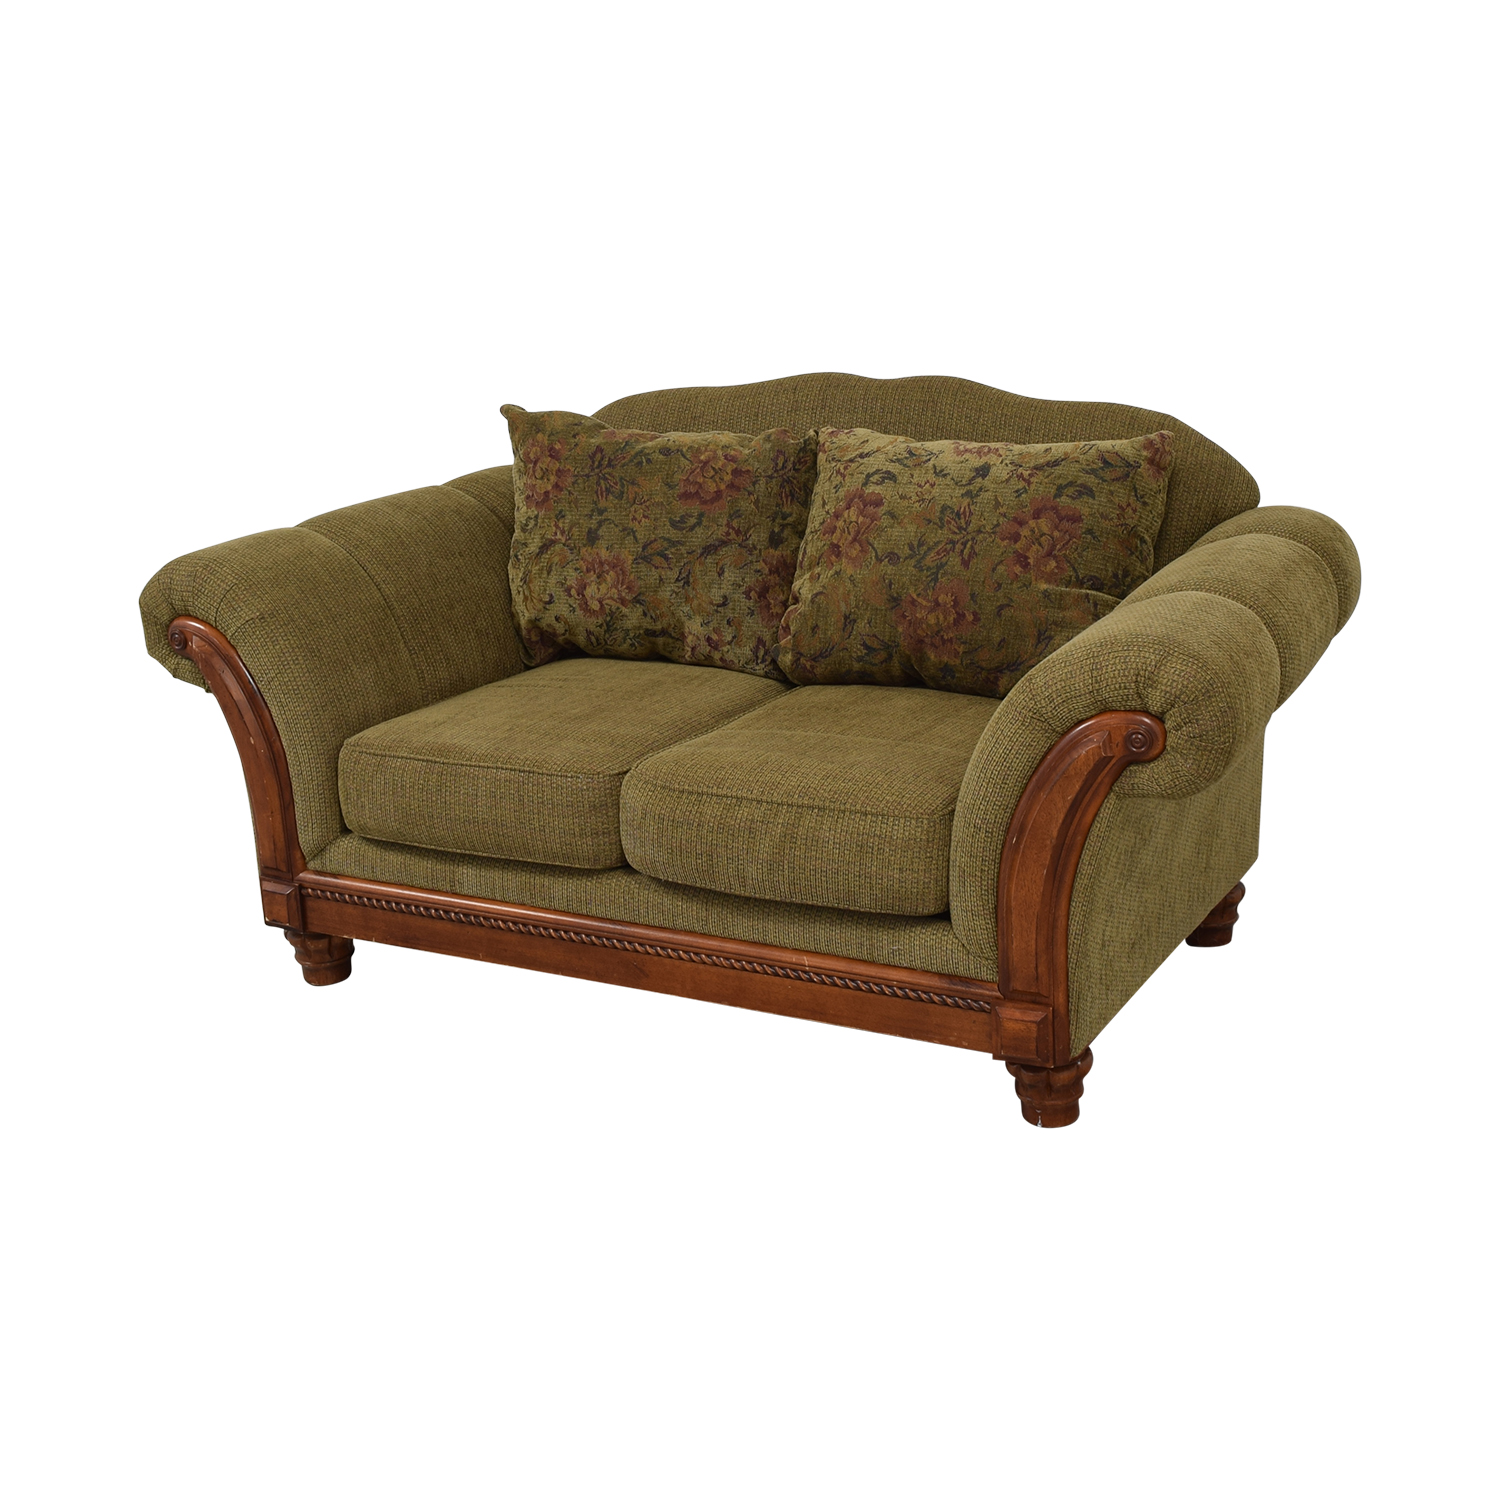 buy Klaussner Upholstered Loveseat Couch Klaussner Loveseats